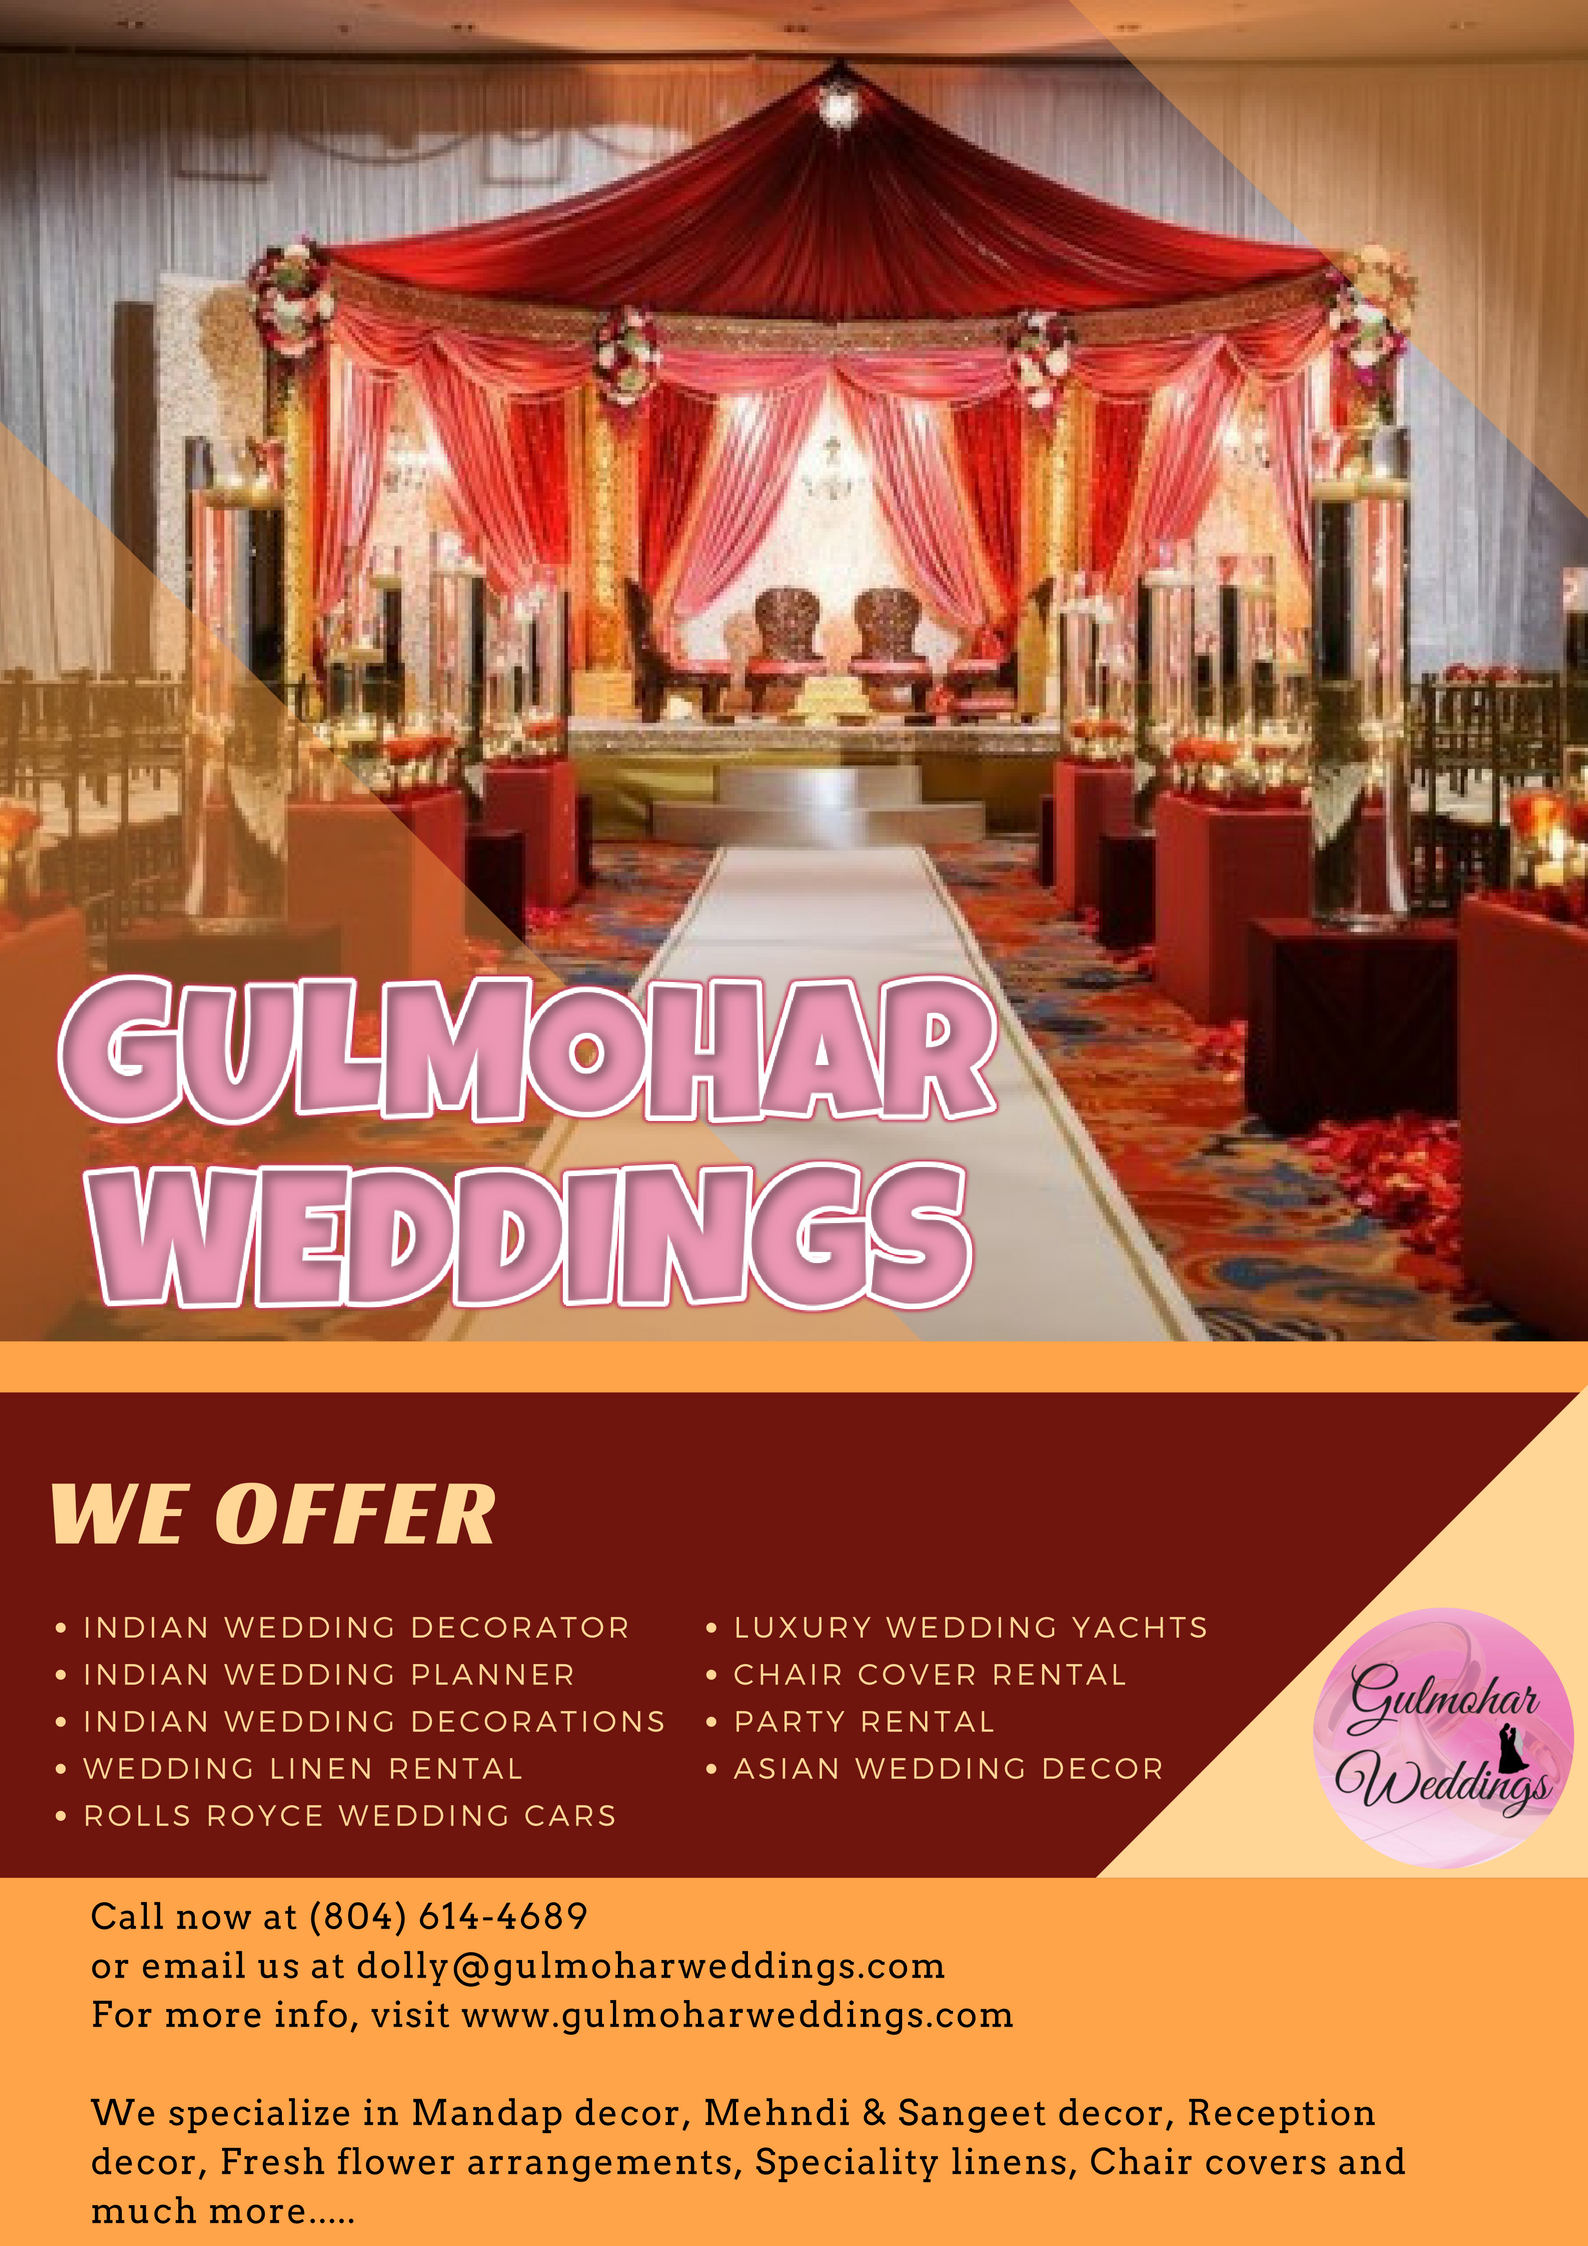 Services offered indian wedding decorator in richmond va indian services offered indian wedding decorator in richmond va indian wedding decorator in virginia beach va indian wedding decorator in charlottesville junglespirit Choice Image